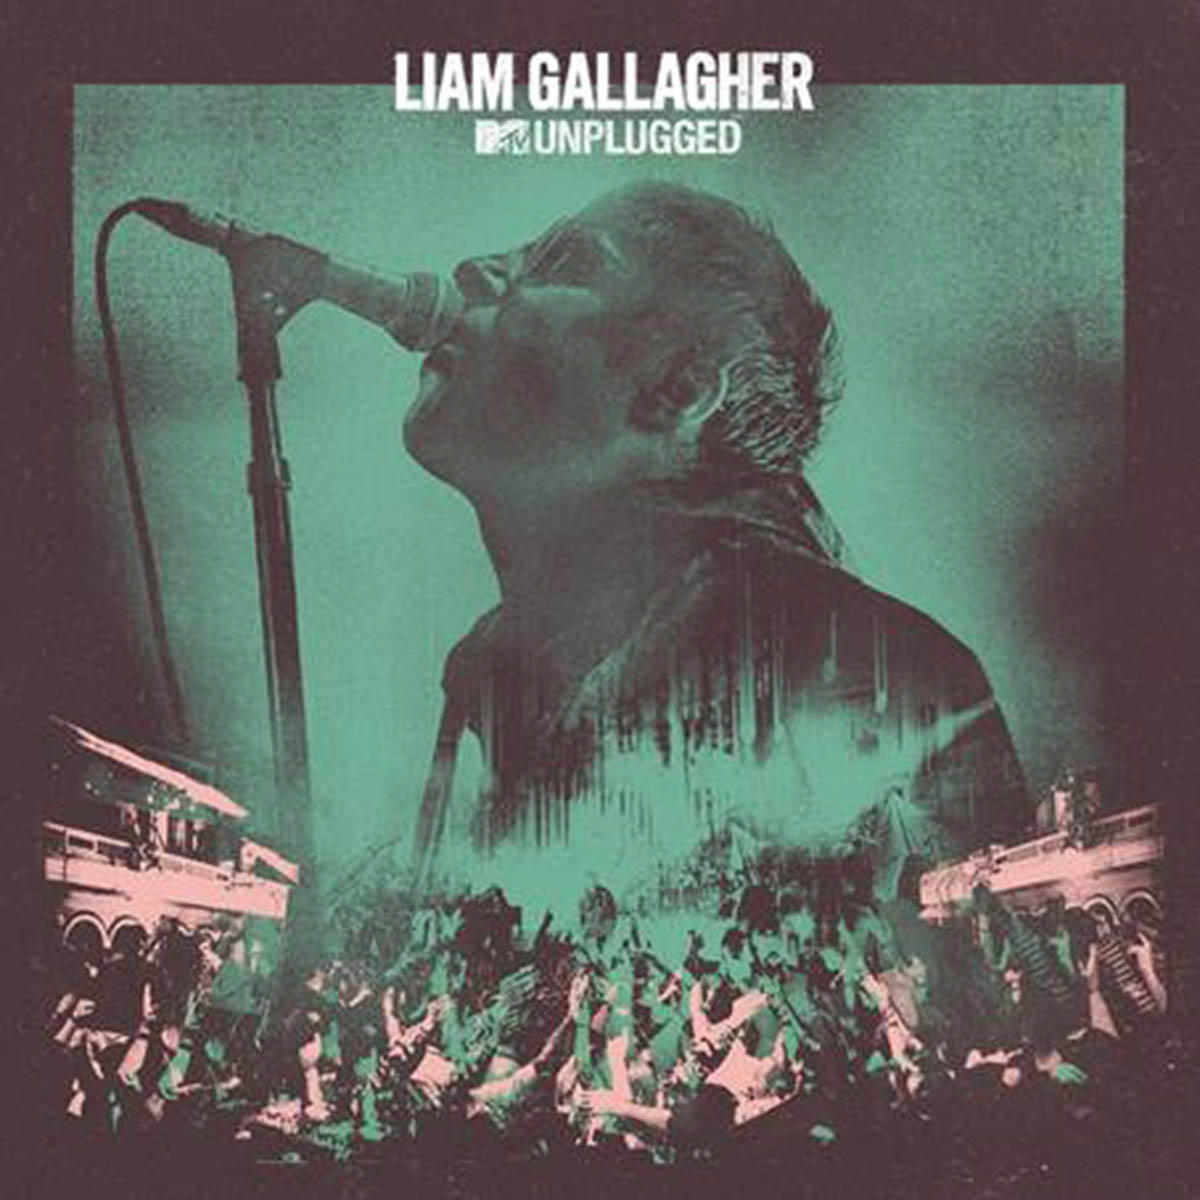 Liam Gallagher 'MTV Unplugged' Release Date Moves To June 12th